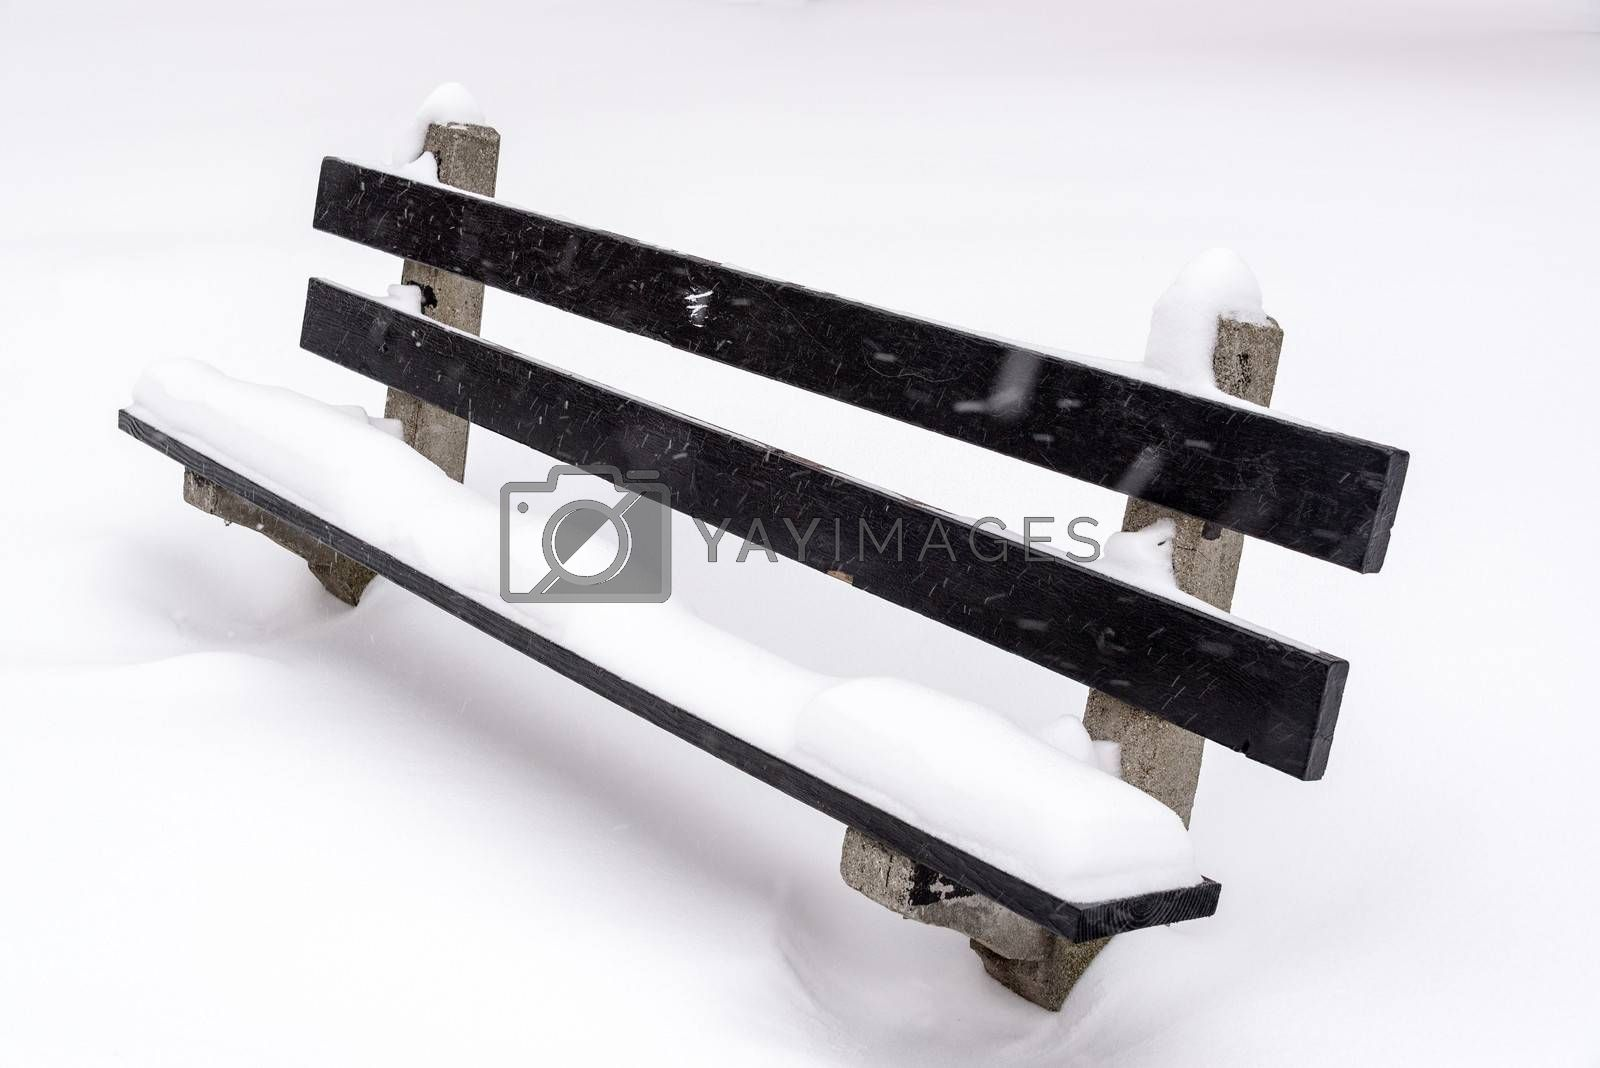 Royalty free image of Snow Covered Bench by jkraft5